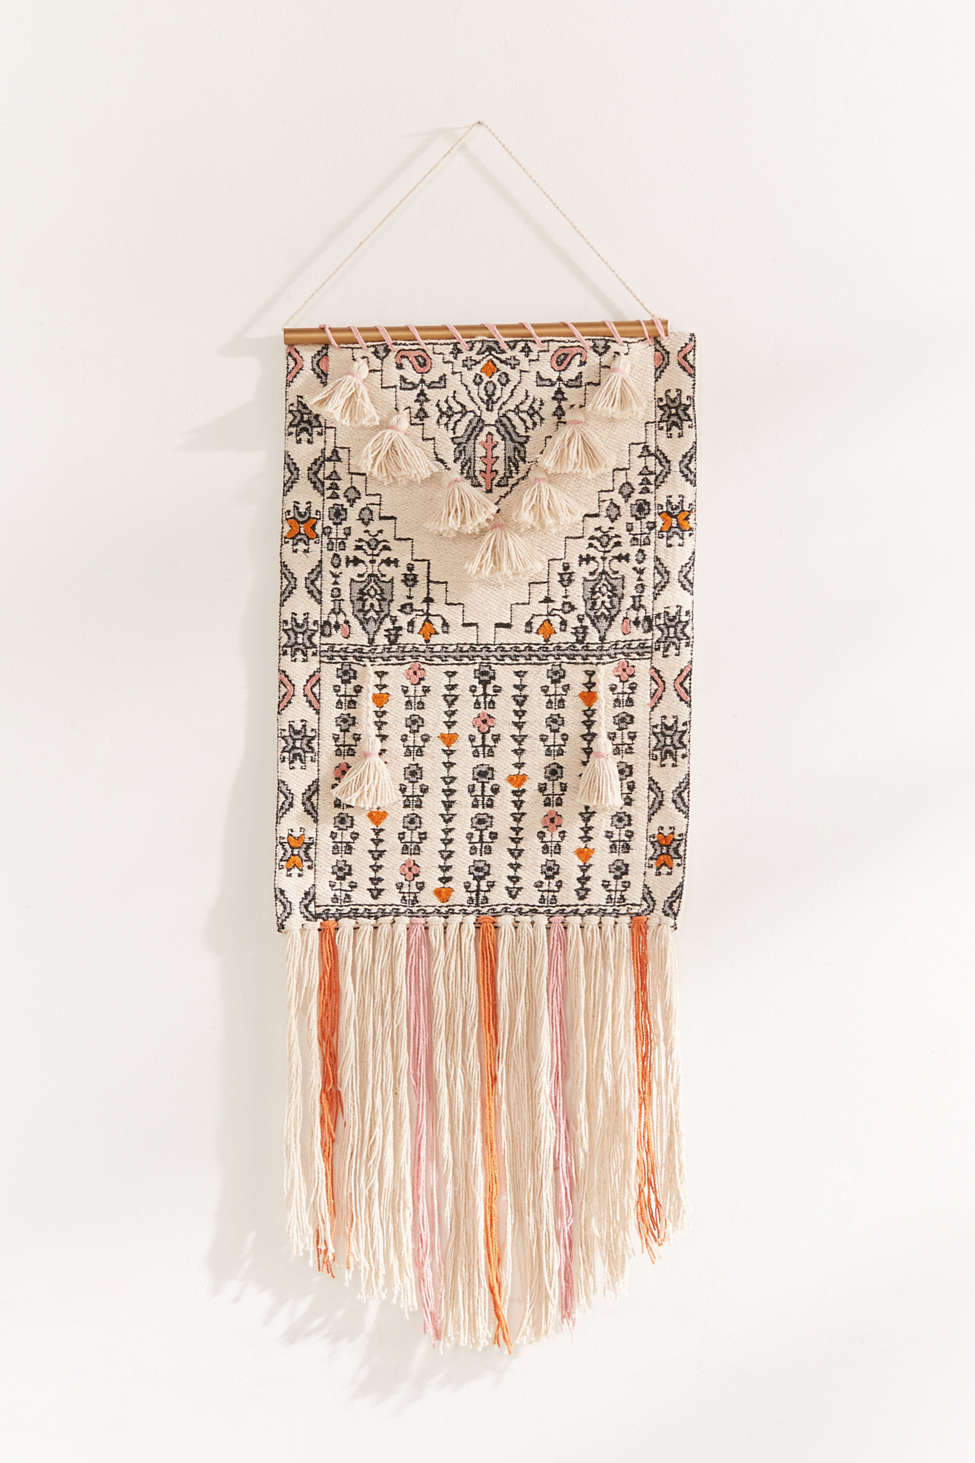 Slide View: 1: Mini Tassel Wall Hanging